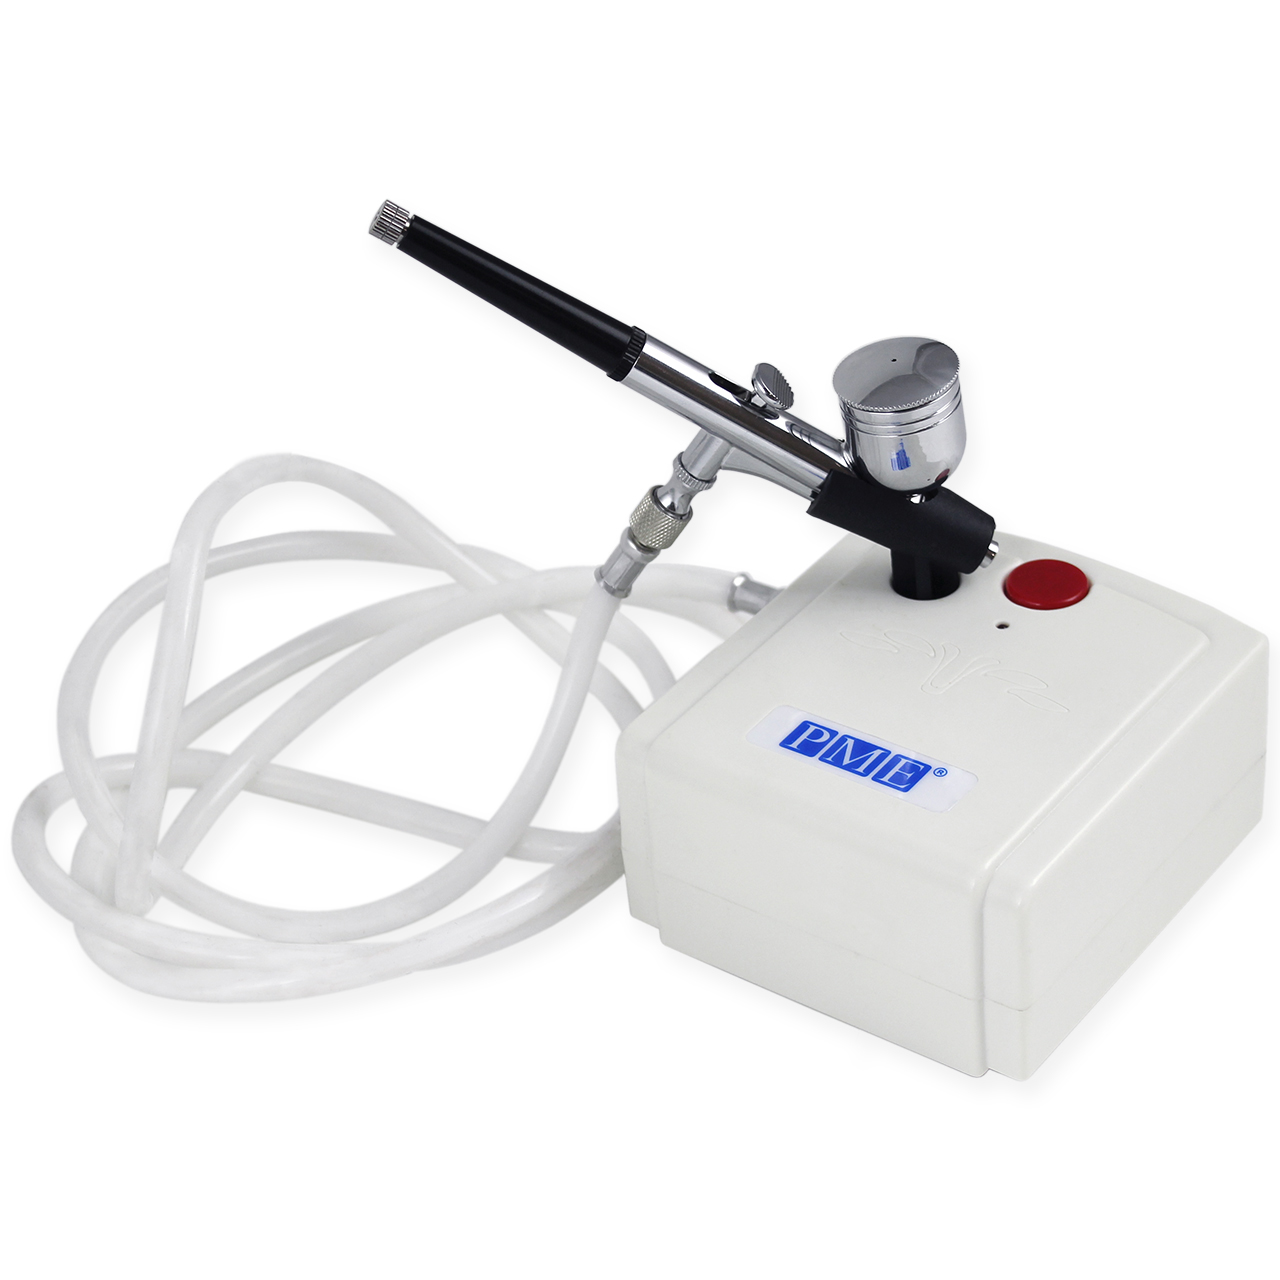 Image of Airbrush